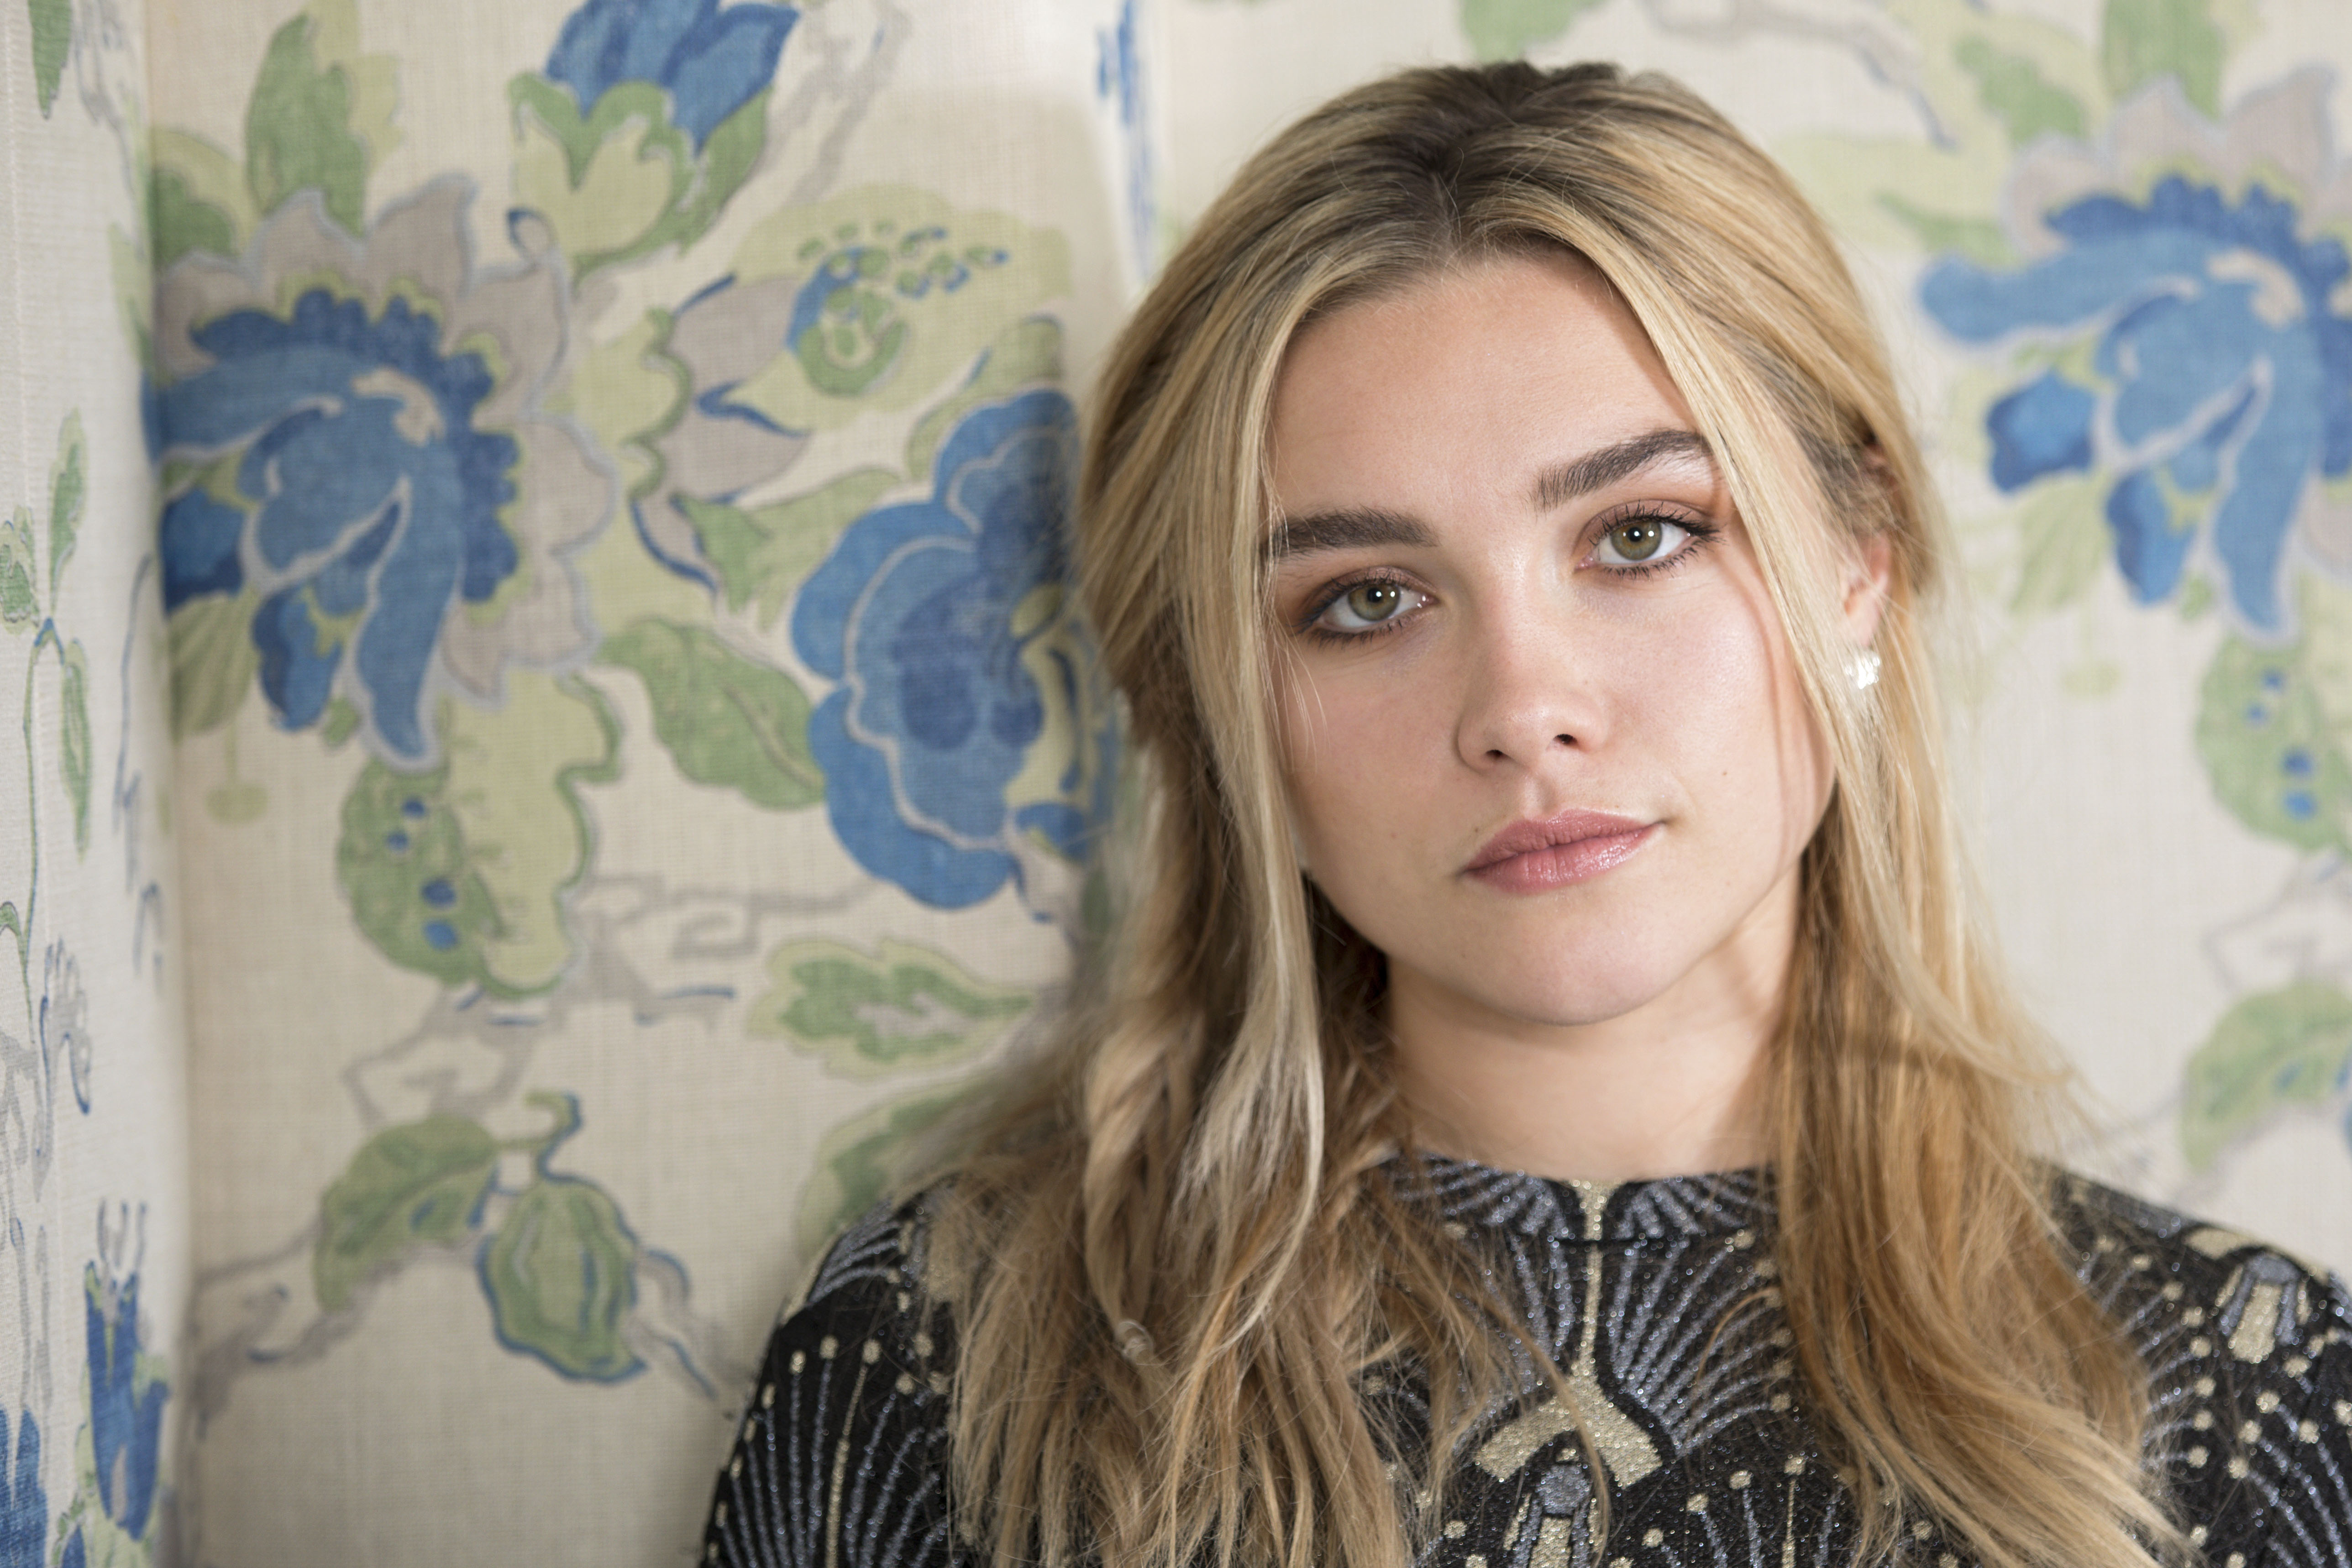 Florence Pugh poses for a portrait at the Crosby Street Hotel on Tuesday, June 18, 2019, in New York. (Photo by Brian Ach/Invision/AP)